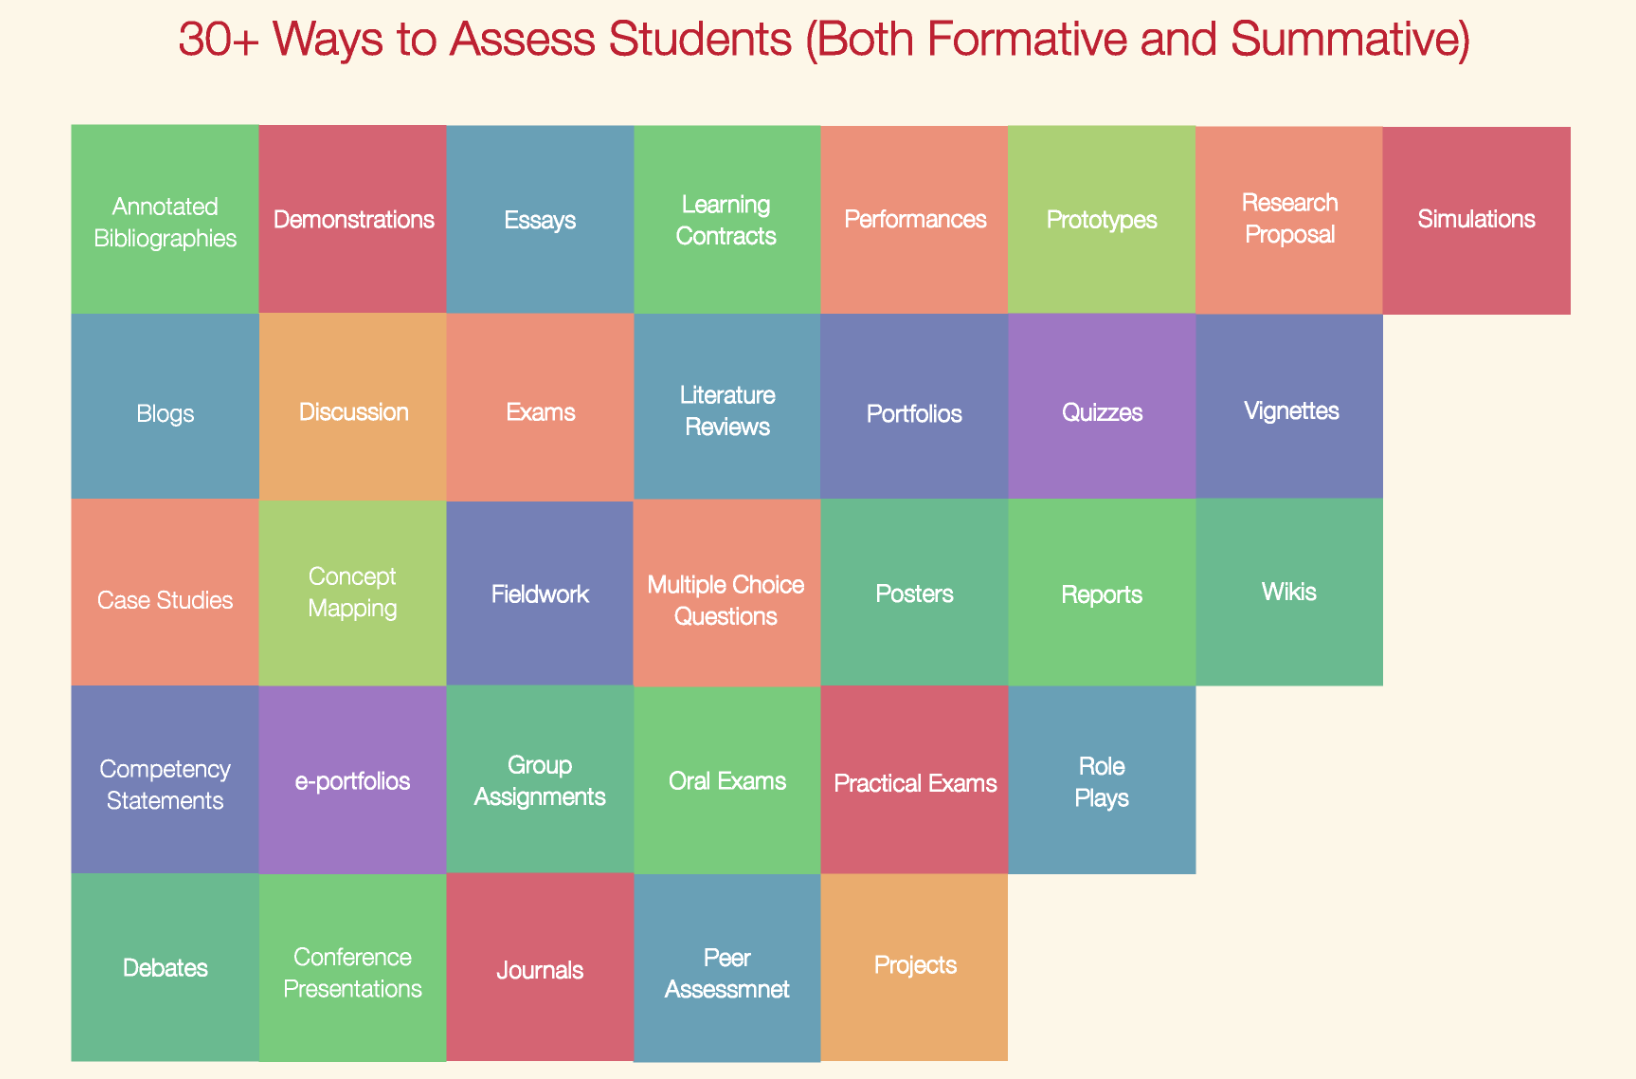 30+ Ways to assess students: formative and summative